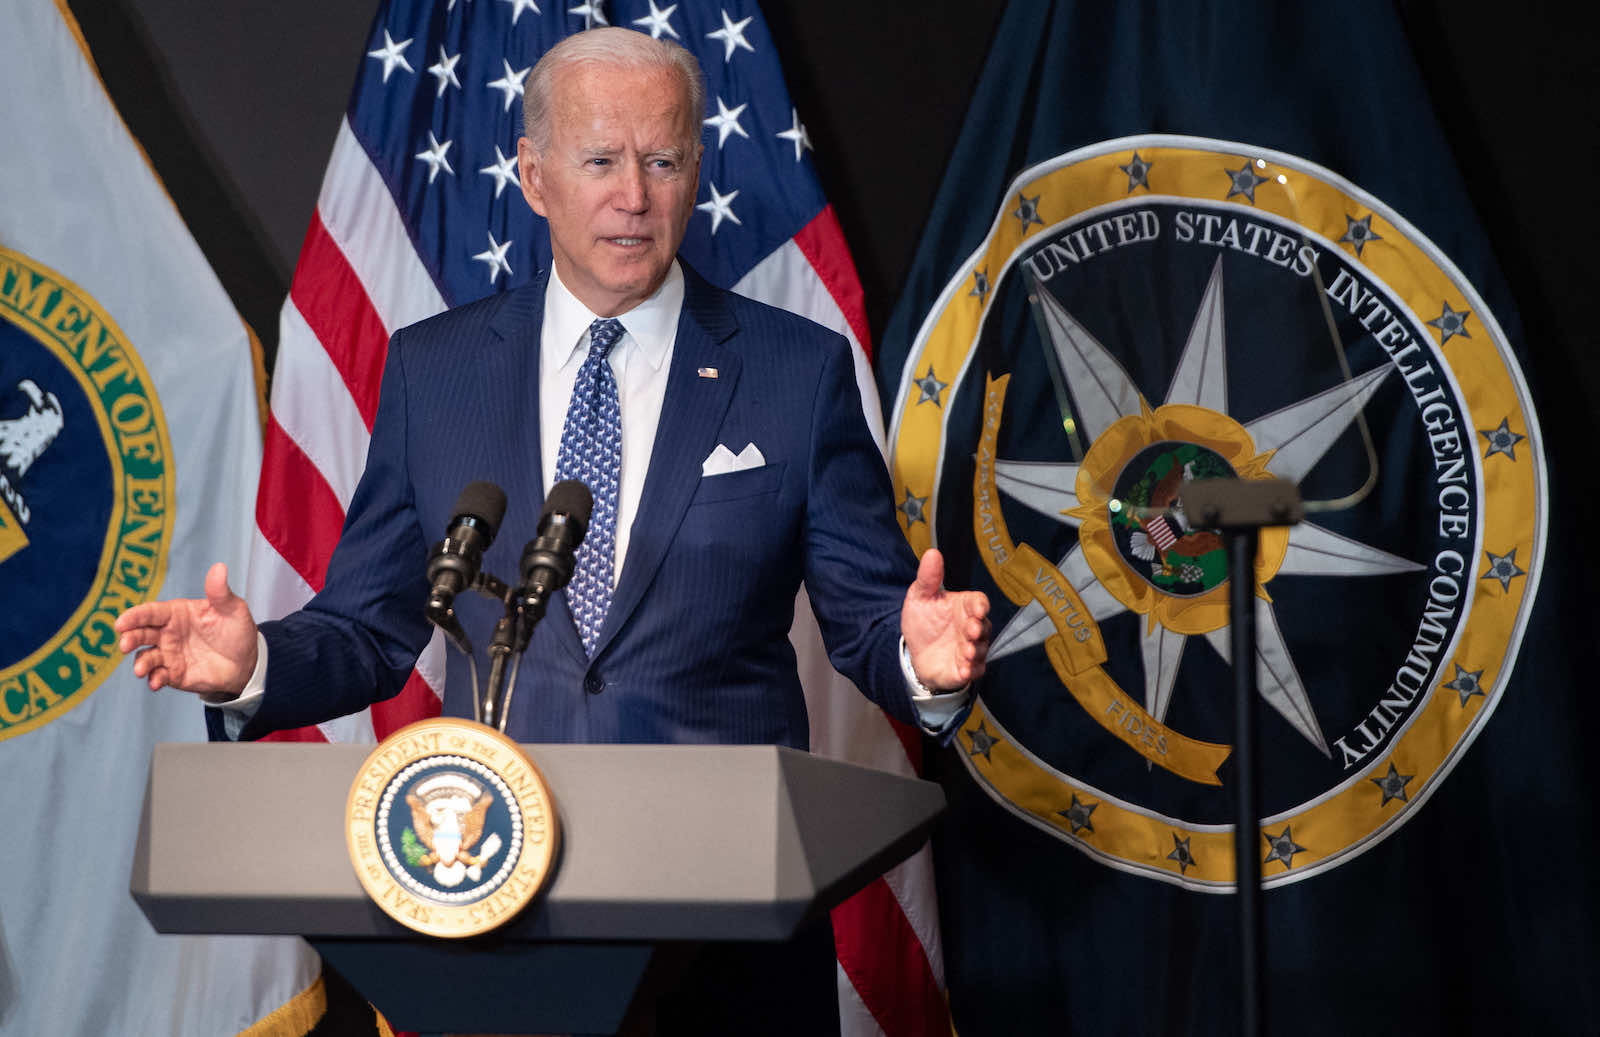 US President Joe Biden addresses the Intelligence Community workforce on a tour at the Office of the Director of National Intelligence, Virginia, 27 July (Saul Loeb/AFP via Getty Images)